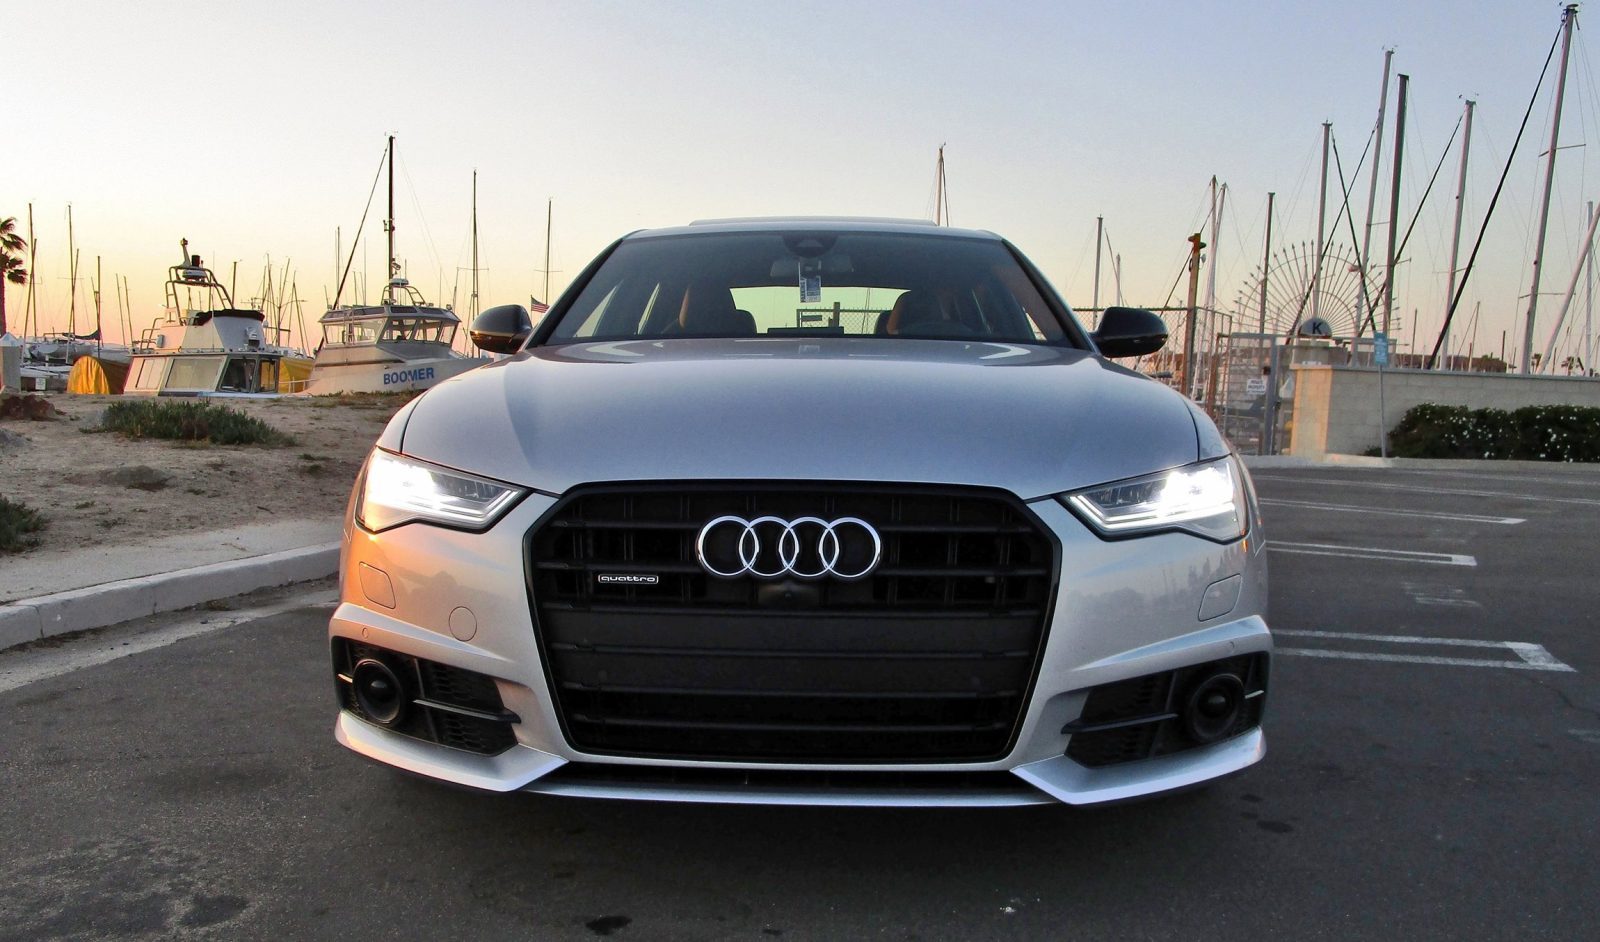 2017 audi a6 3 0t competition quattro road test review by ben lewis. Black Bedroom Furniture Sets. Home Design Ideas